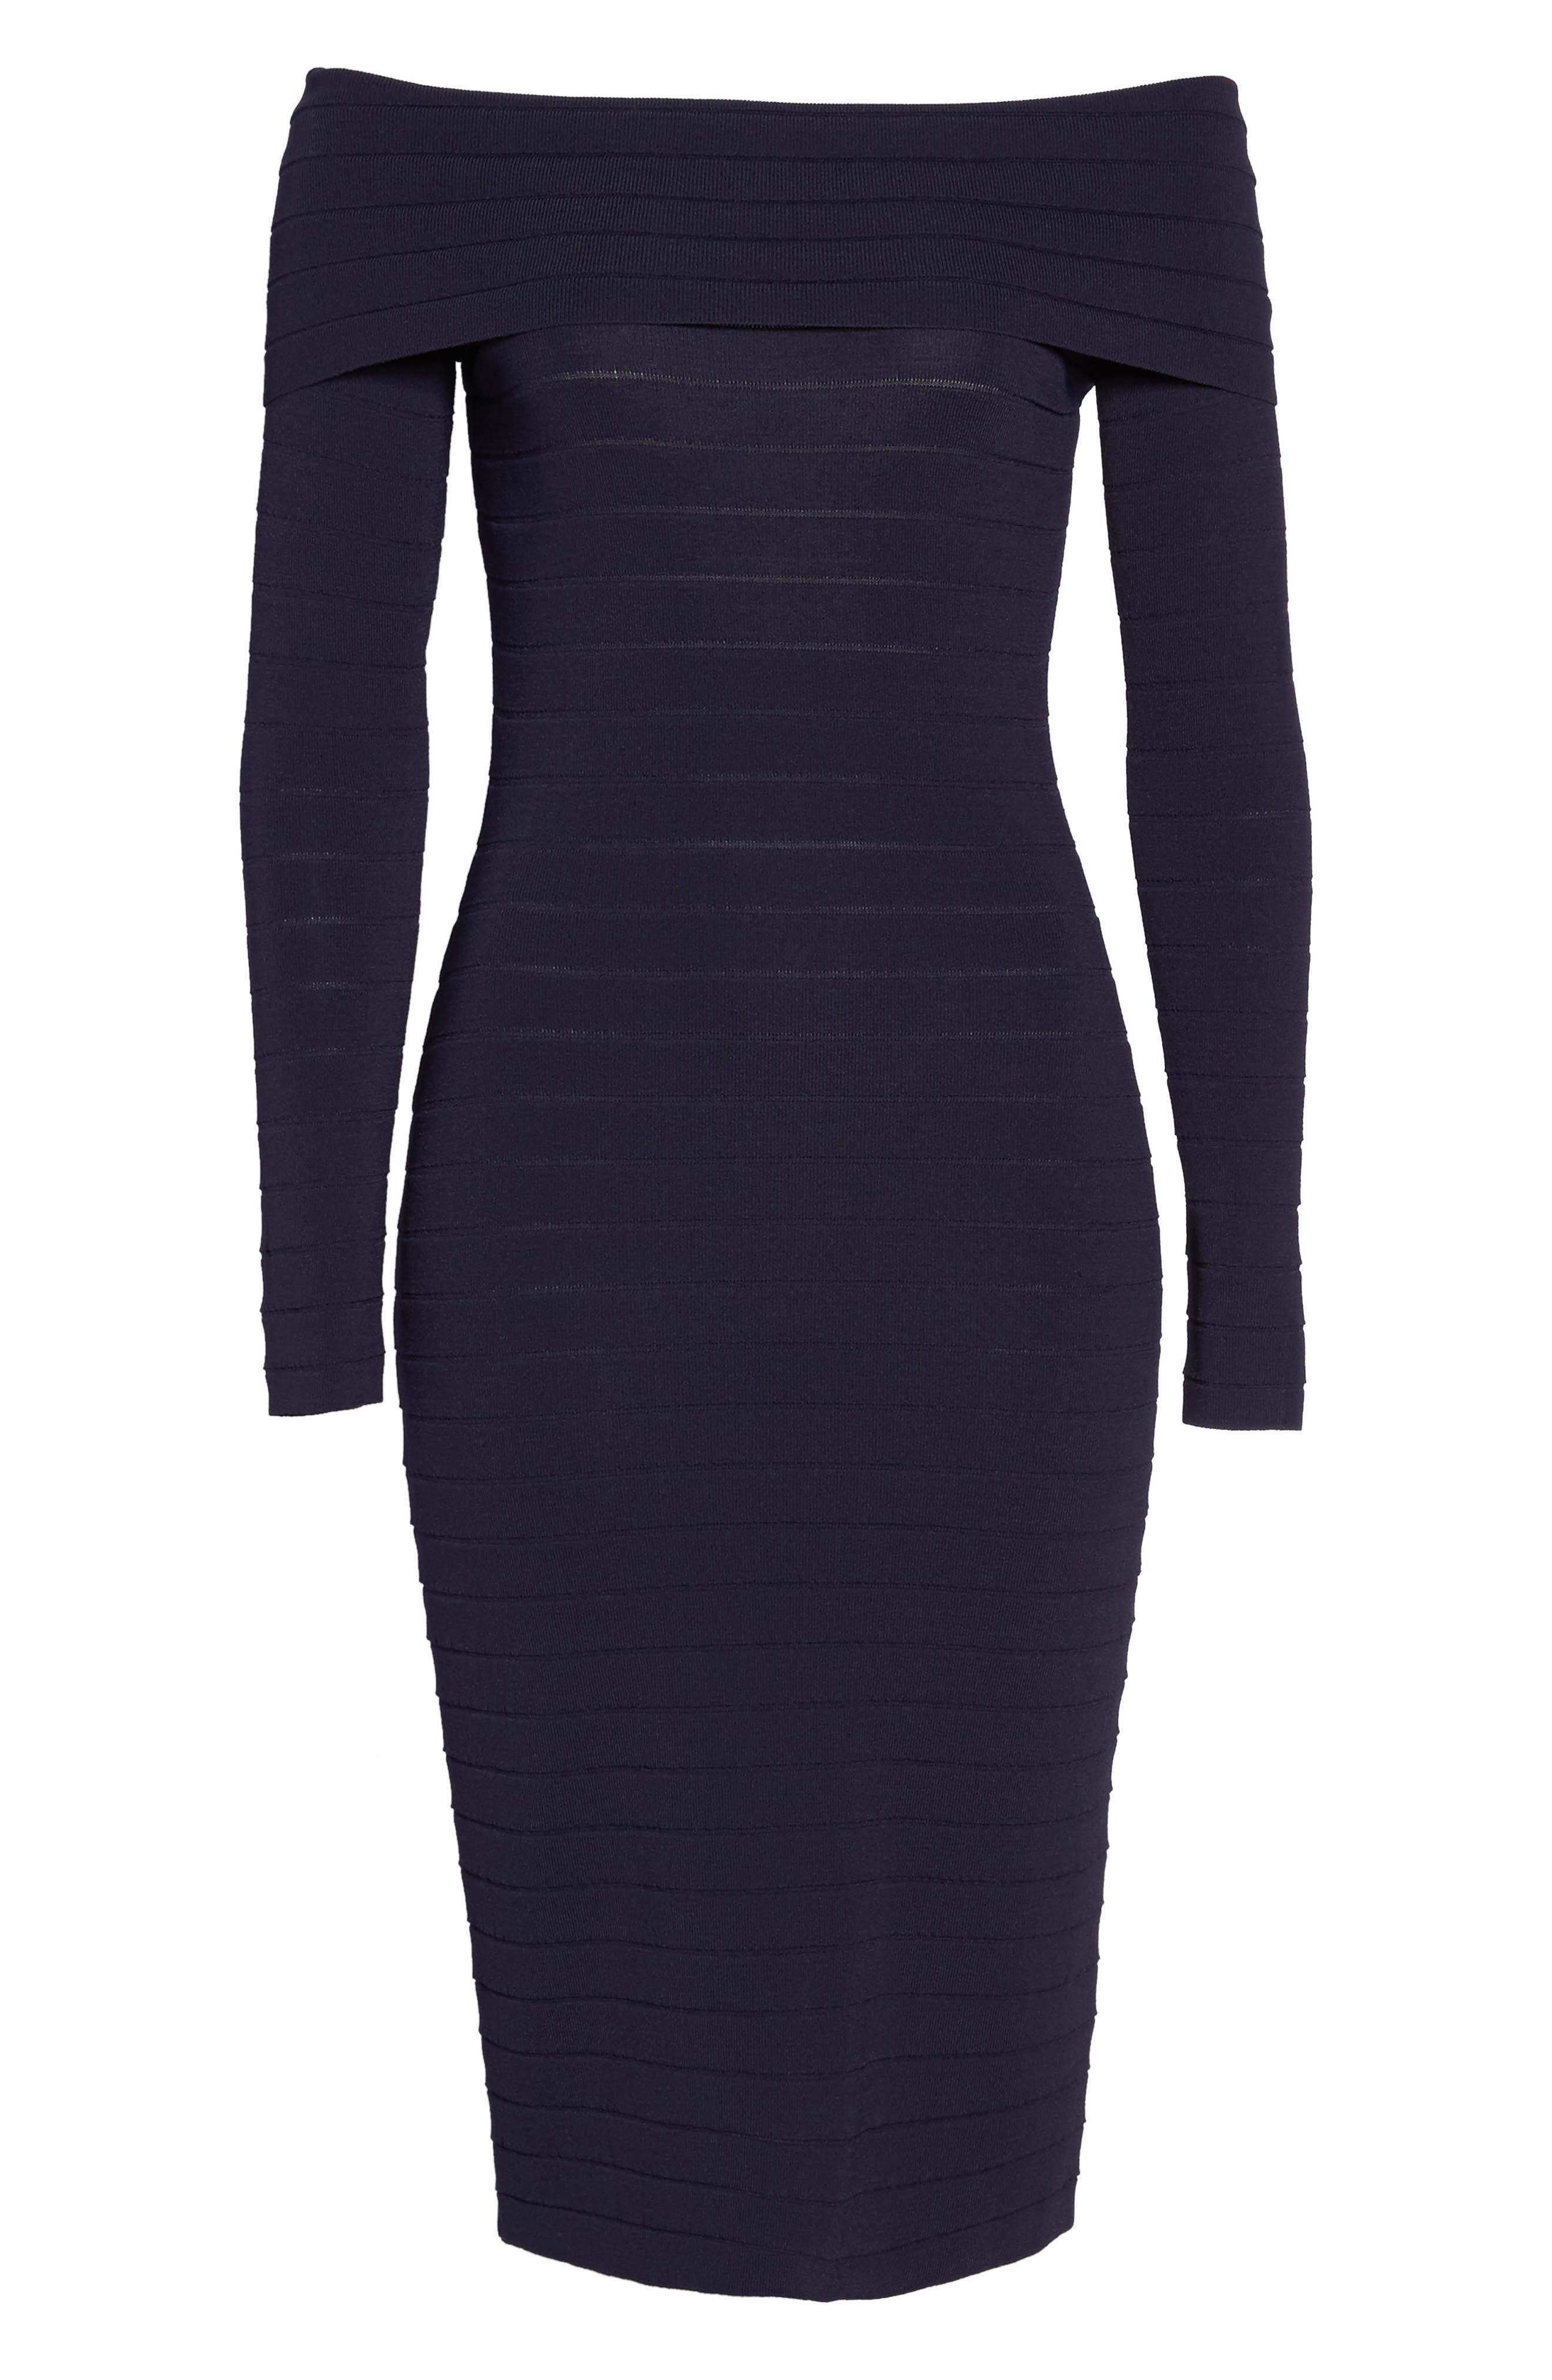 Bandage Midi Dress,                             Alternate thumbnail 28, color,